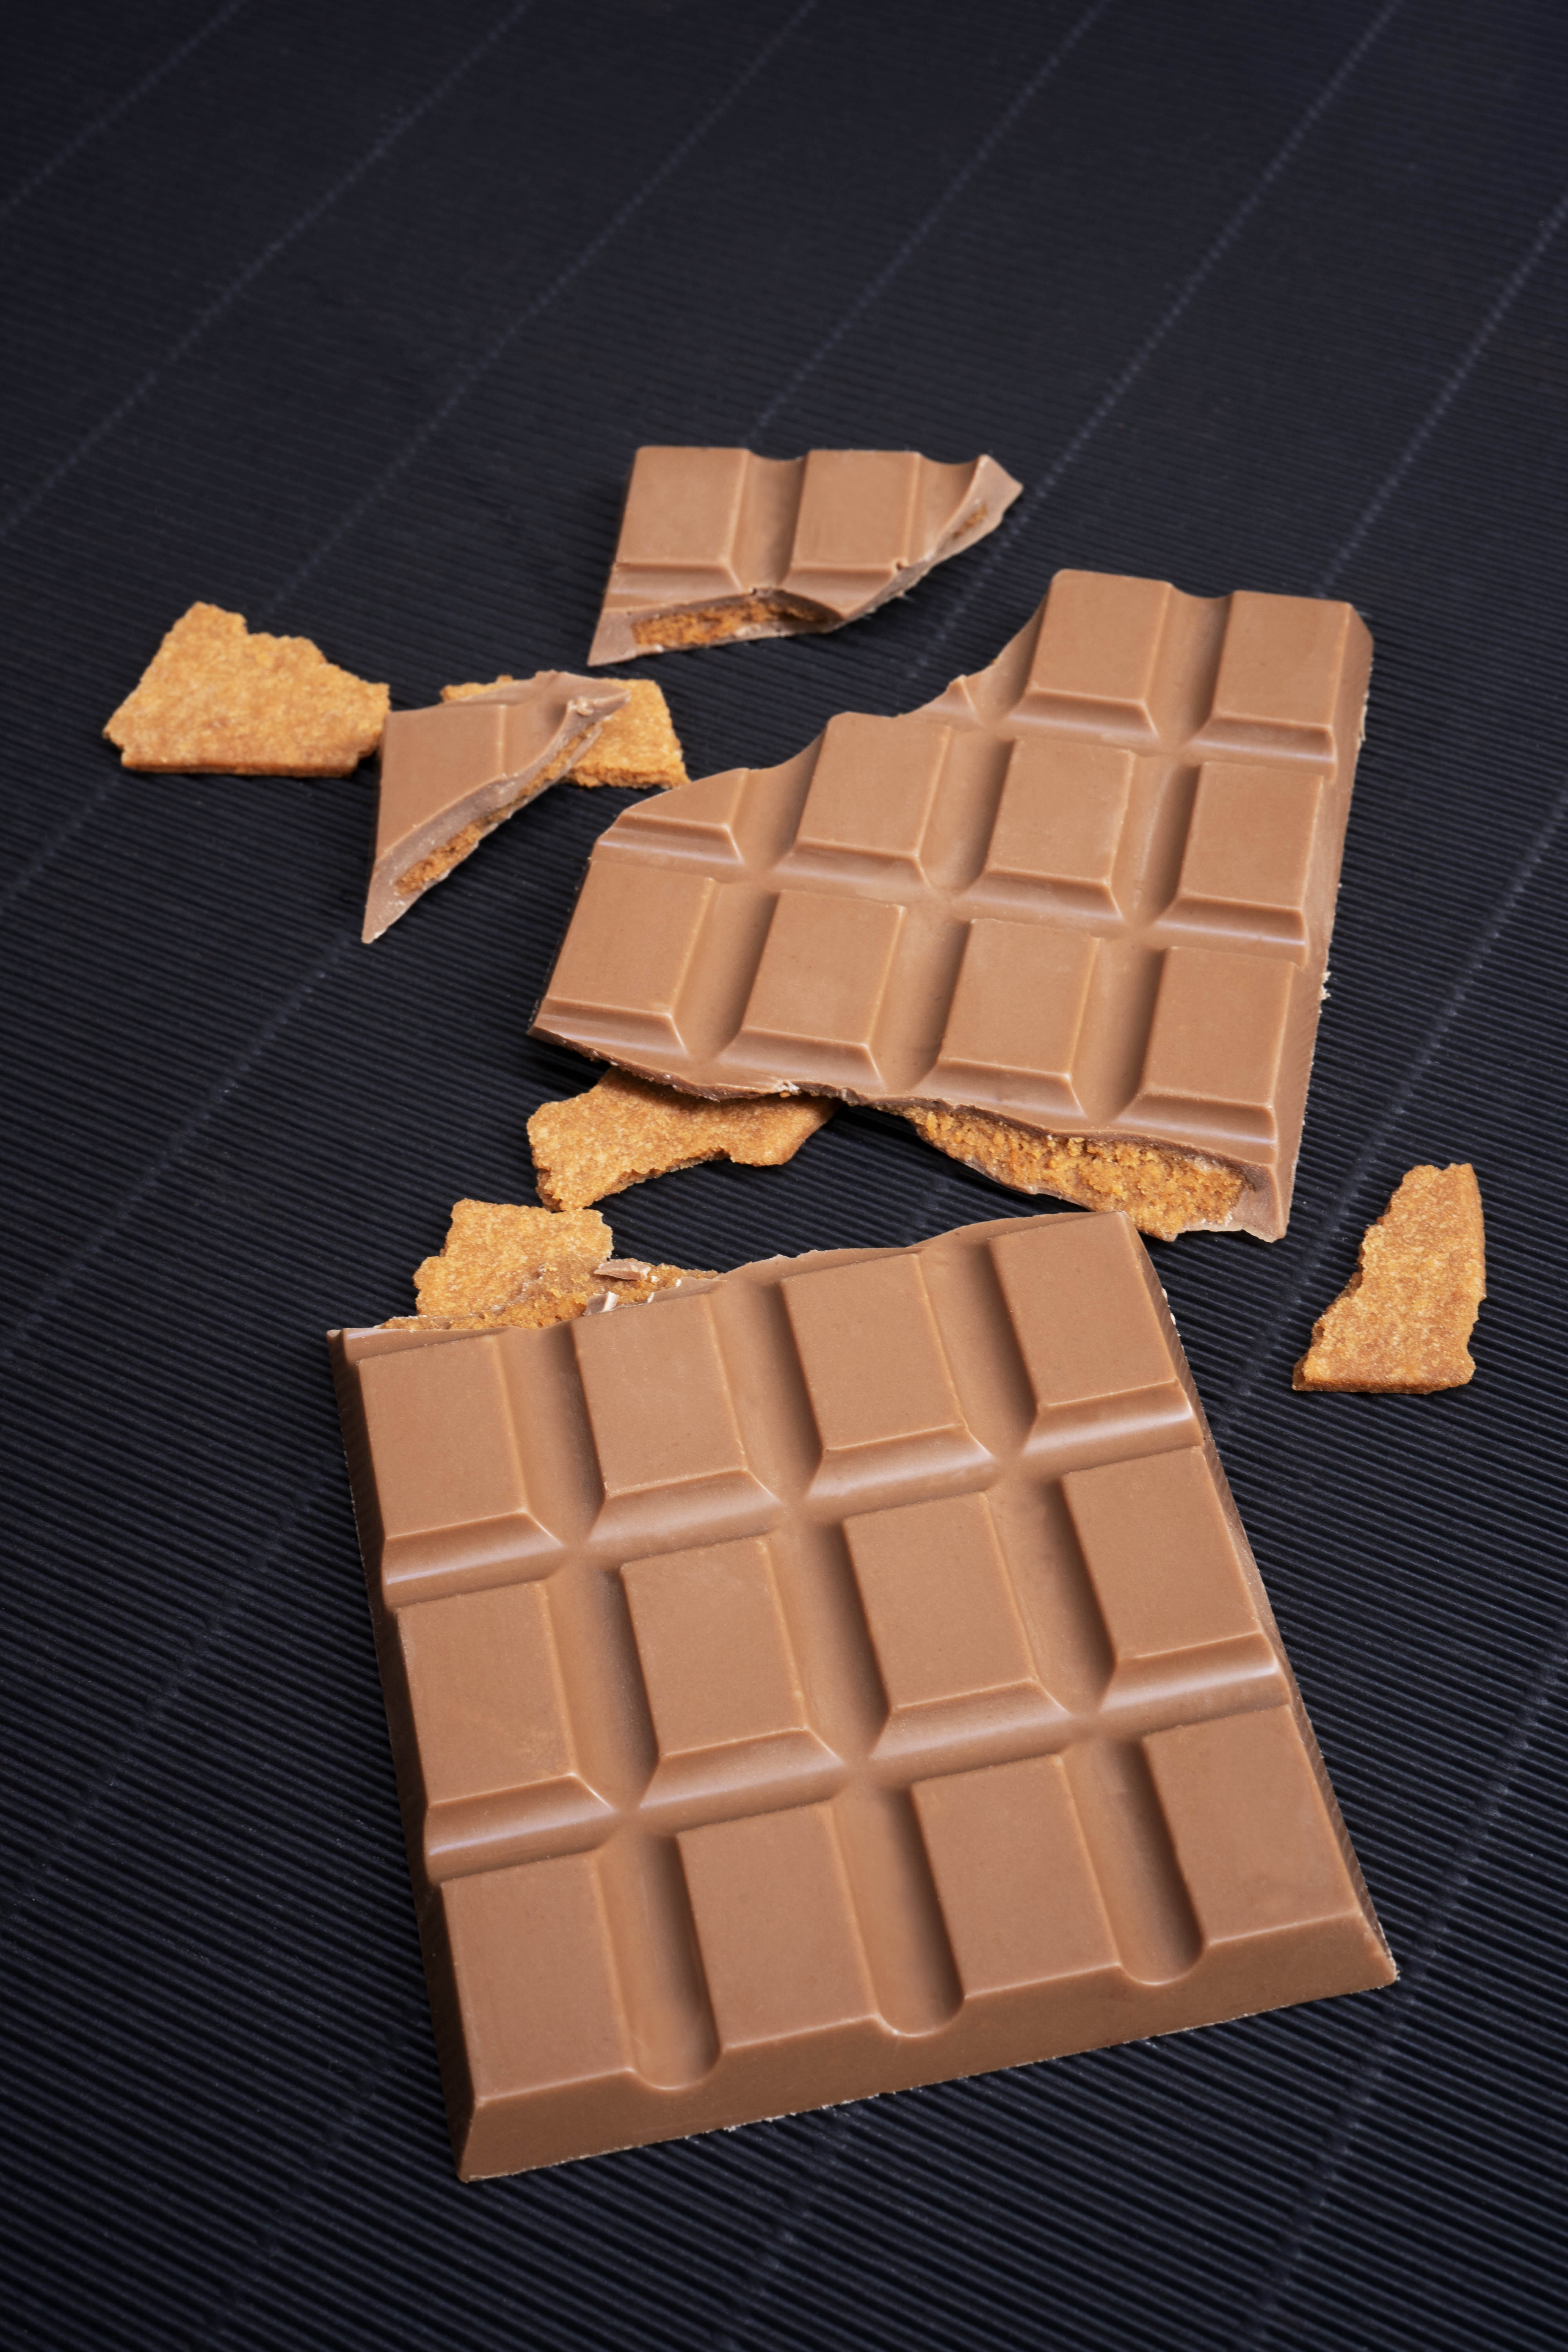 Milk chocolate and biscuit chocolate bar